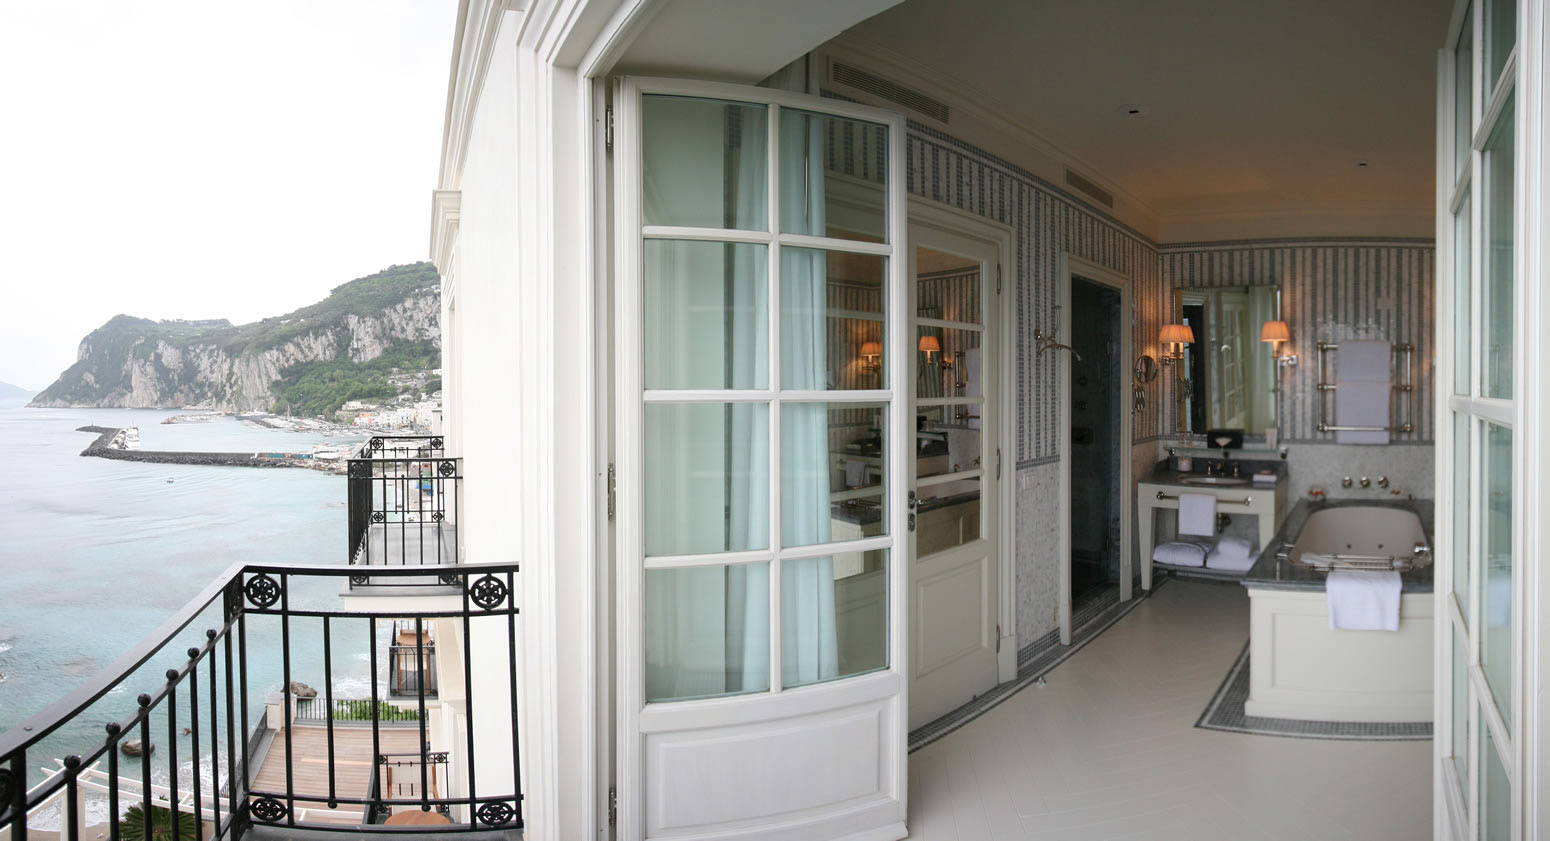 J K Place Capri Hotel Elegant Seaside Decor Idesignarch Interiors Inside Ideas Interiors design about Everything [magnanprojects.com]